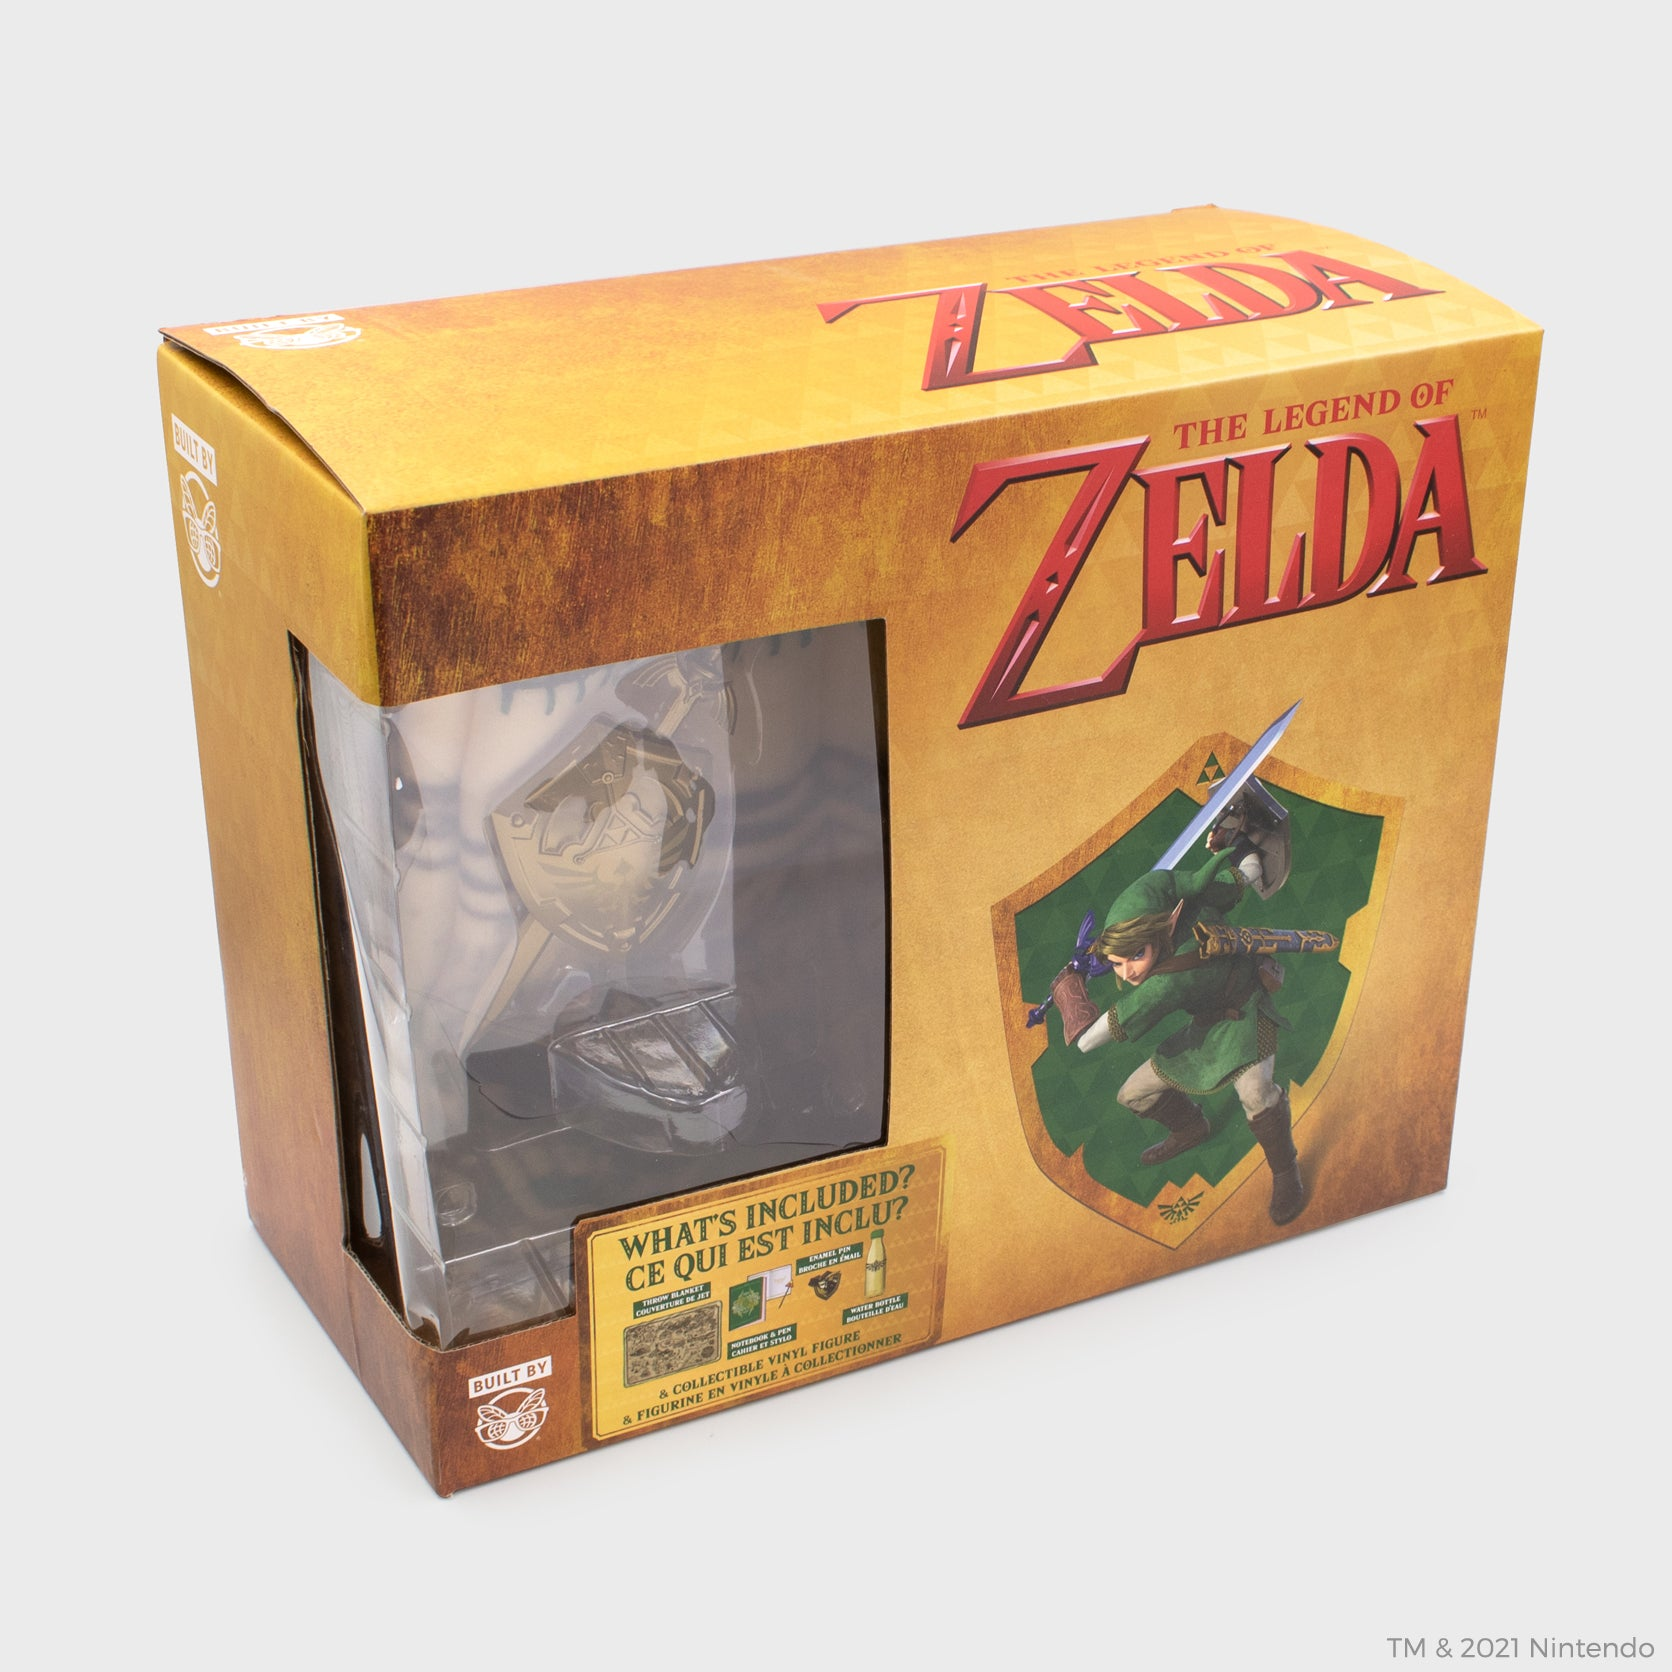 legend of zelda nintendo link loz collector's box culturefly